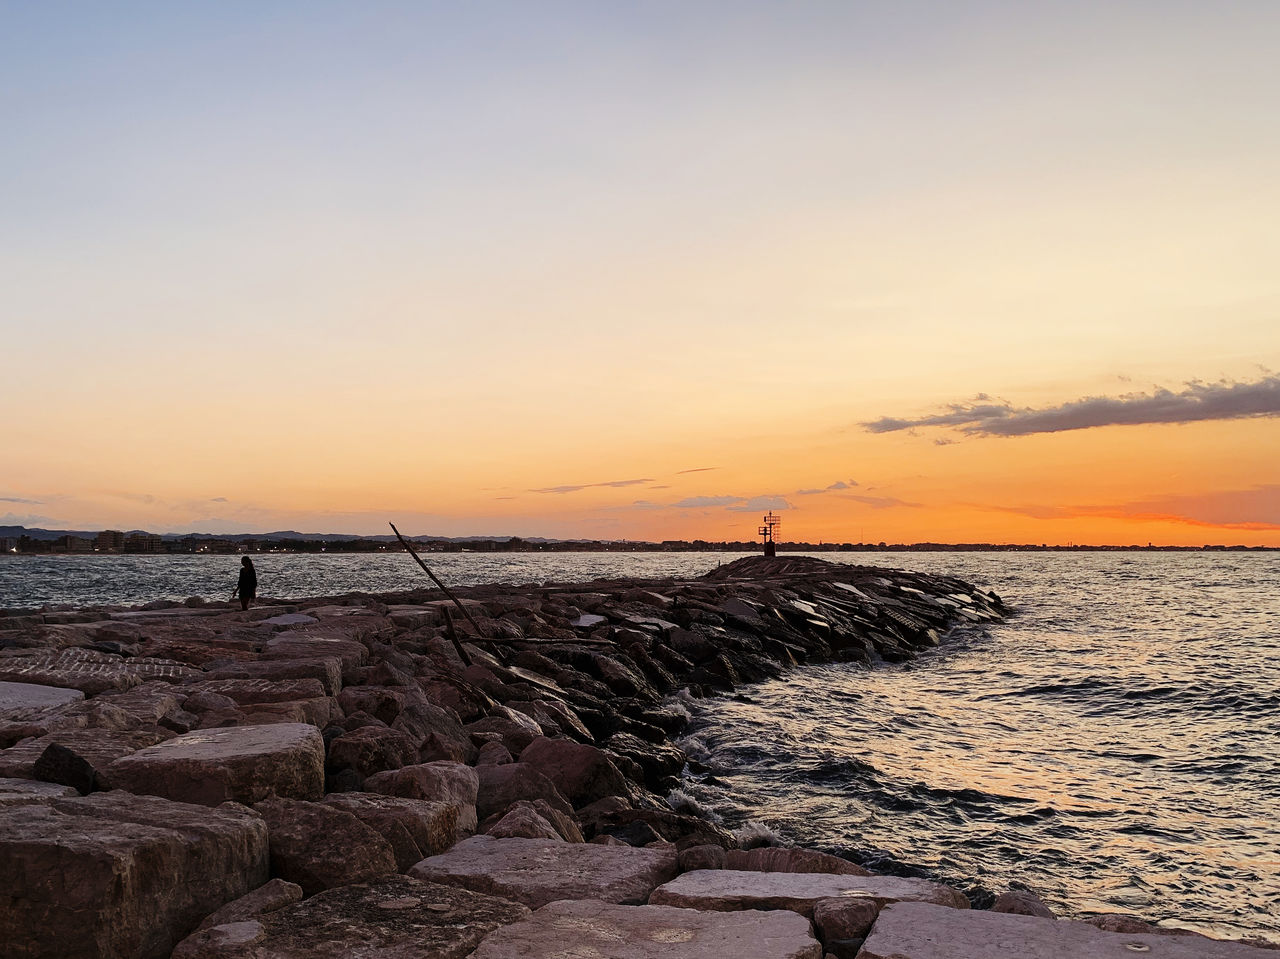 sky, sunset, sea, water, beauty in nature, scenics - nature, rock, rock - object, solid, beach, tranquility, tranquil scene, horizon over water, land, orange color, horizon, cloud - sky, nature, idyllic, outdoors, groyne